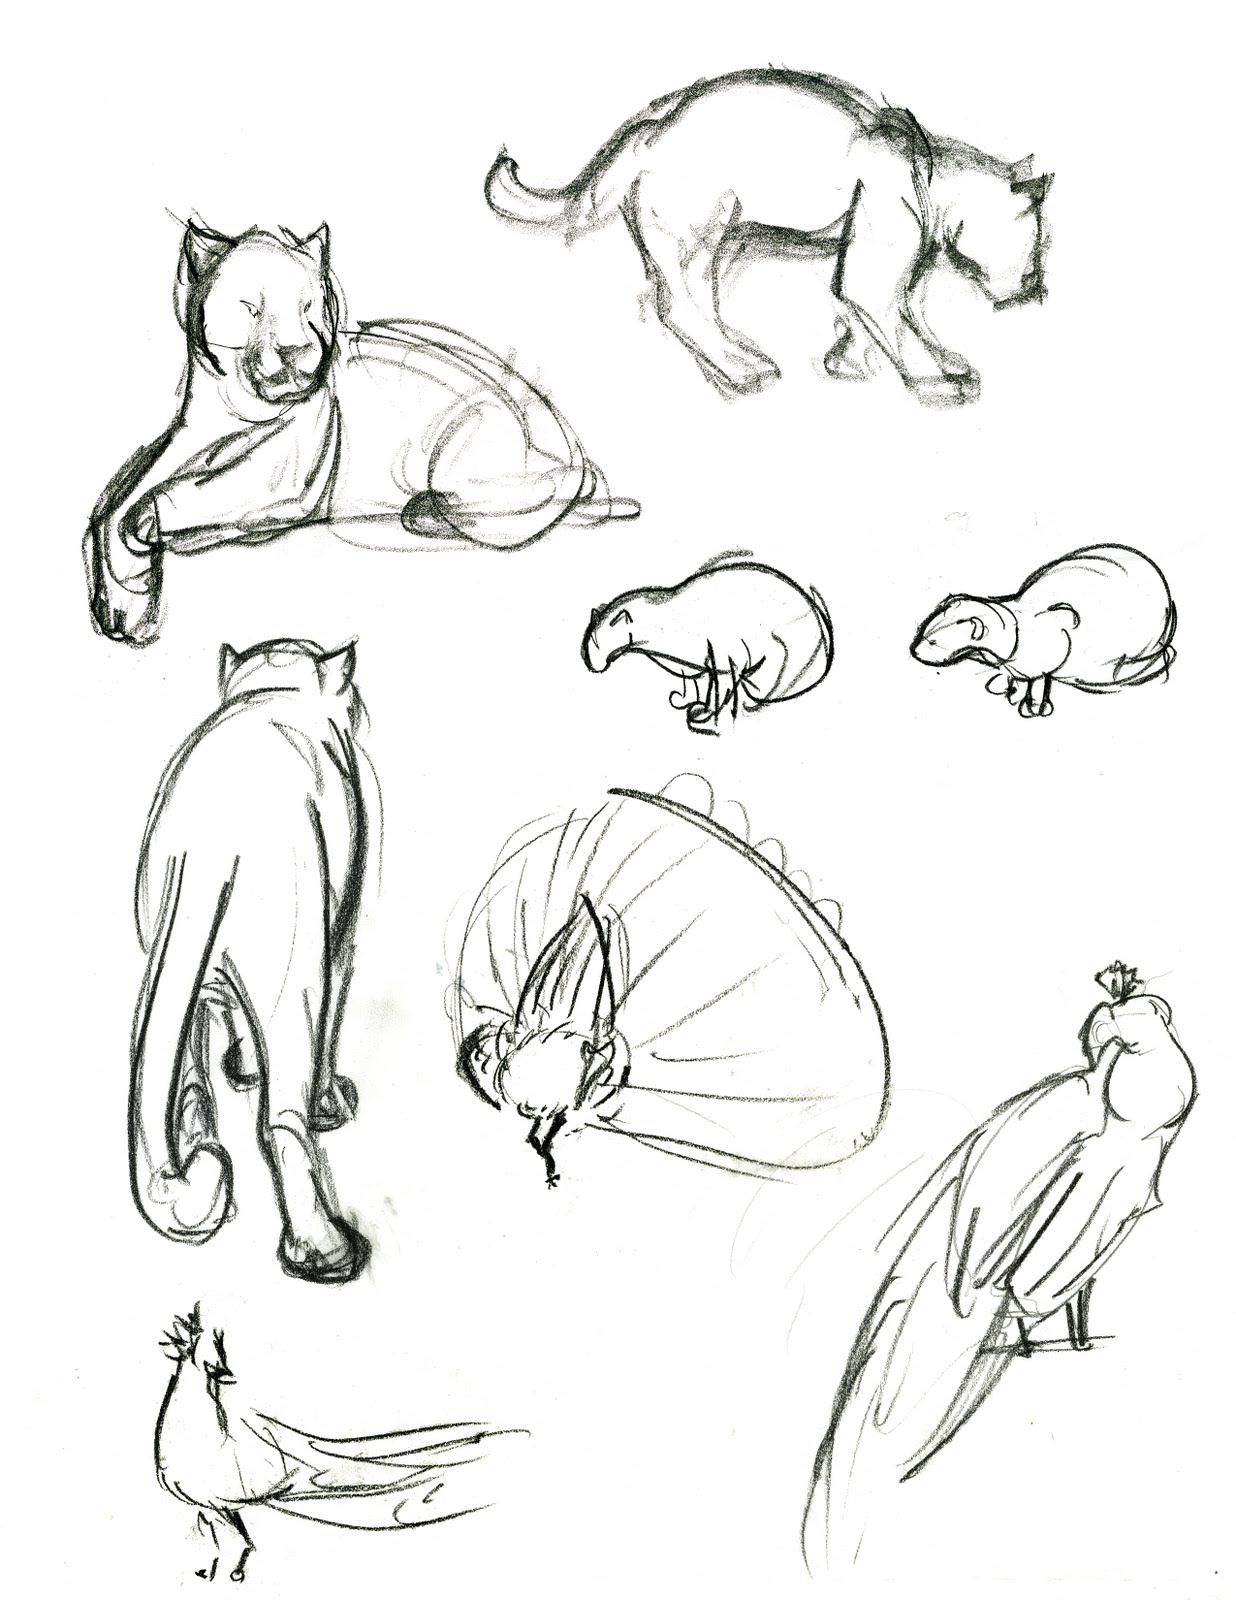 cat drawings | Tick Tock: Big Cats | Art sketches and drawings ...